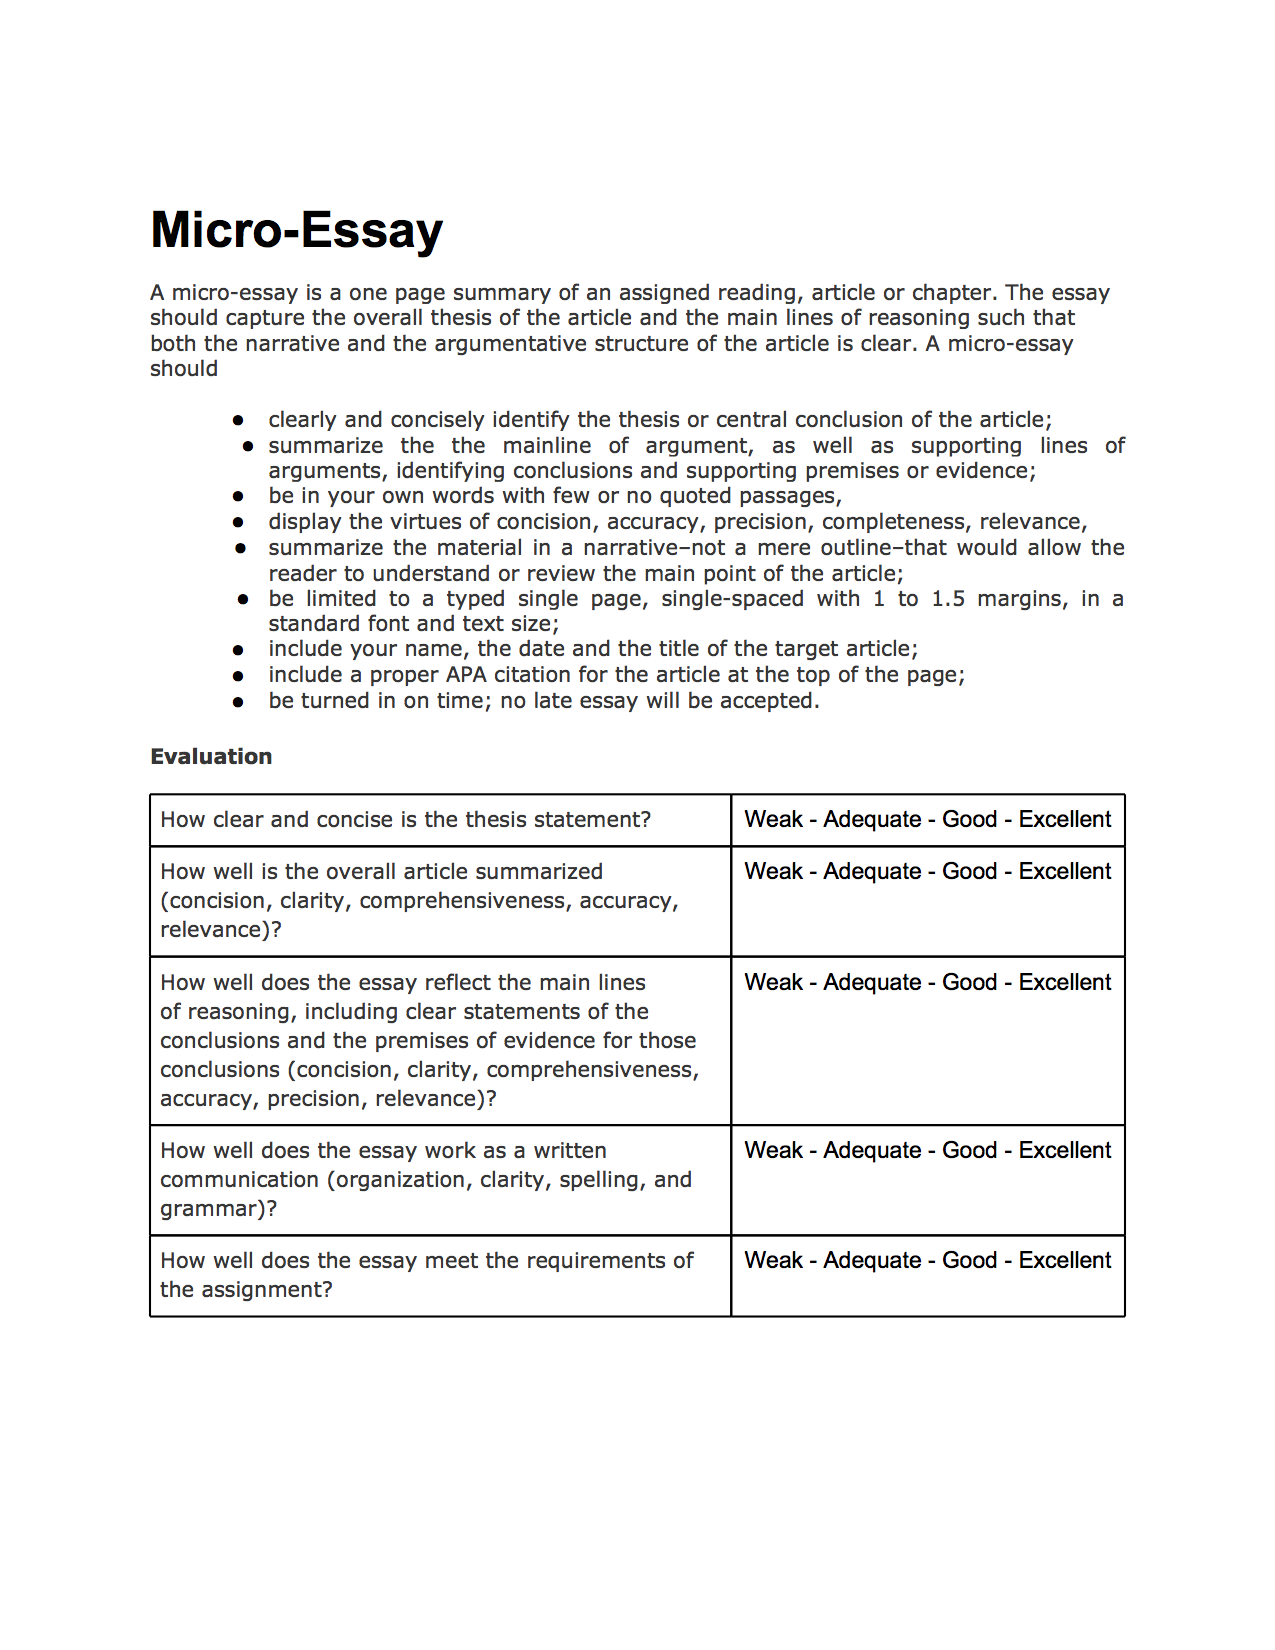 evaluate definition in an essay Writing an evaluation essay is a great way to size up a particular object or idea this type of critical writing sets precise criteria for evaluation, providing fair and solid supporting evidence so that readers can form their opinions about a subject.